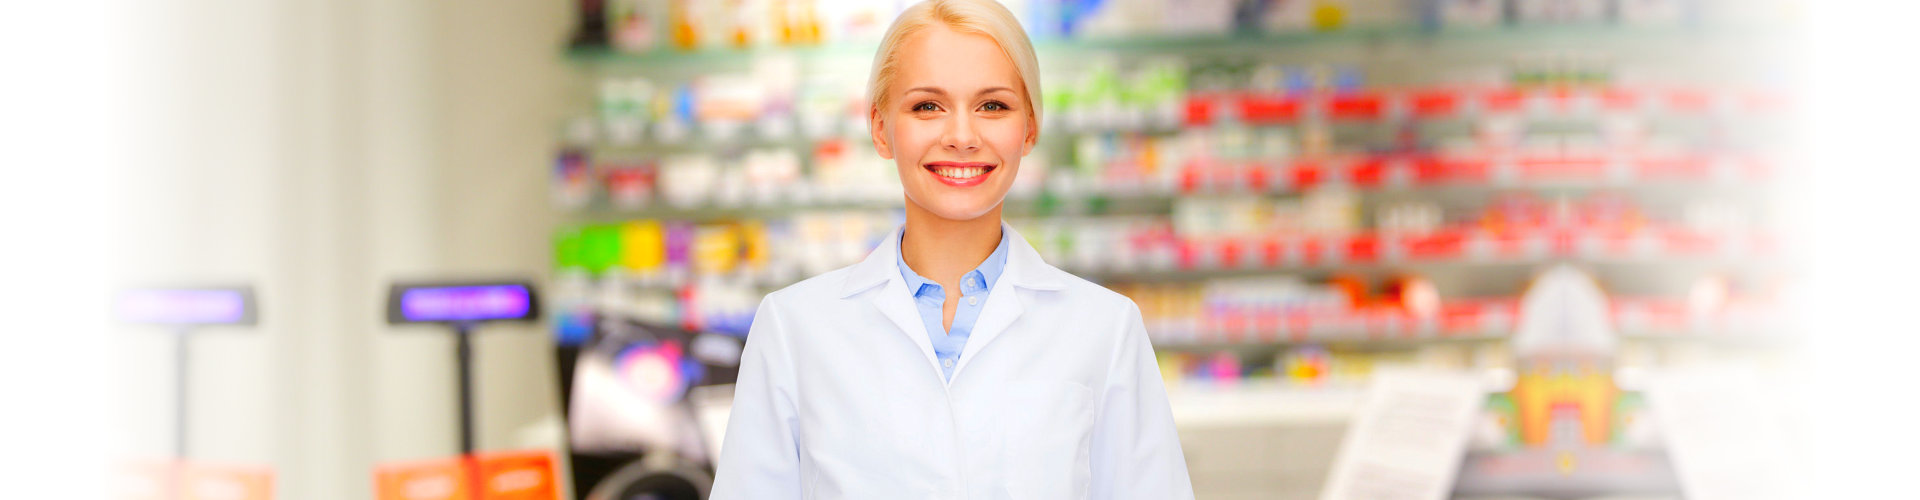 a pharmacist smiling